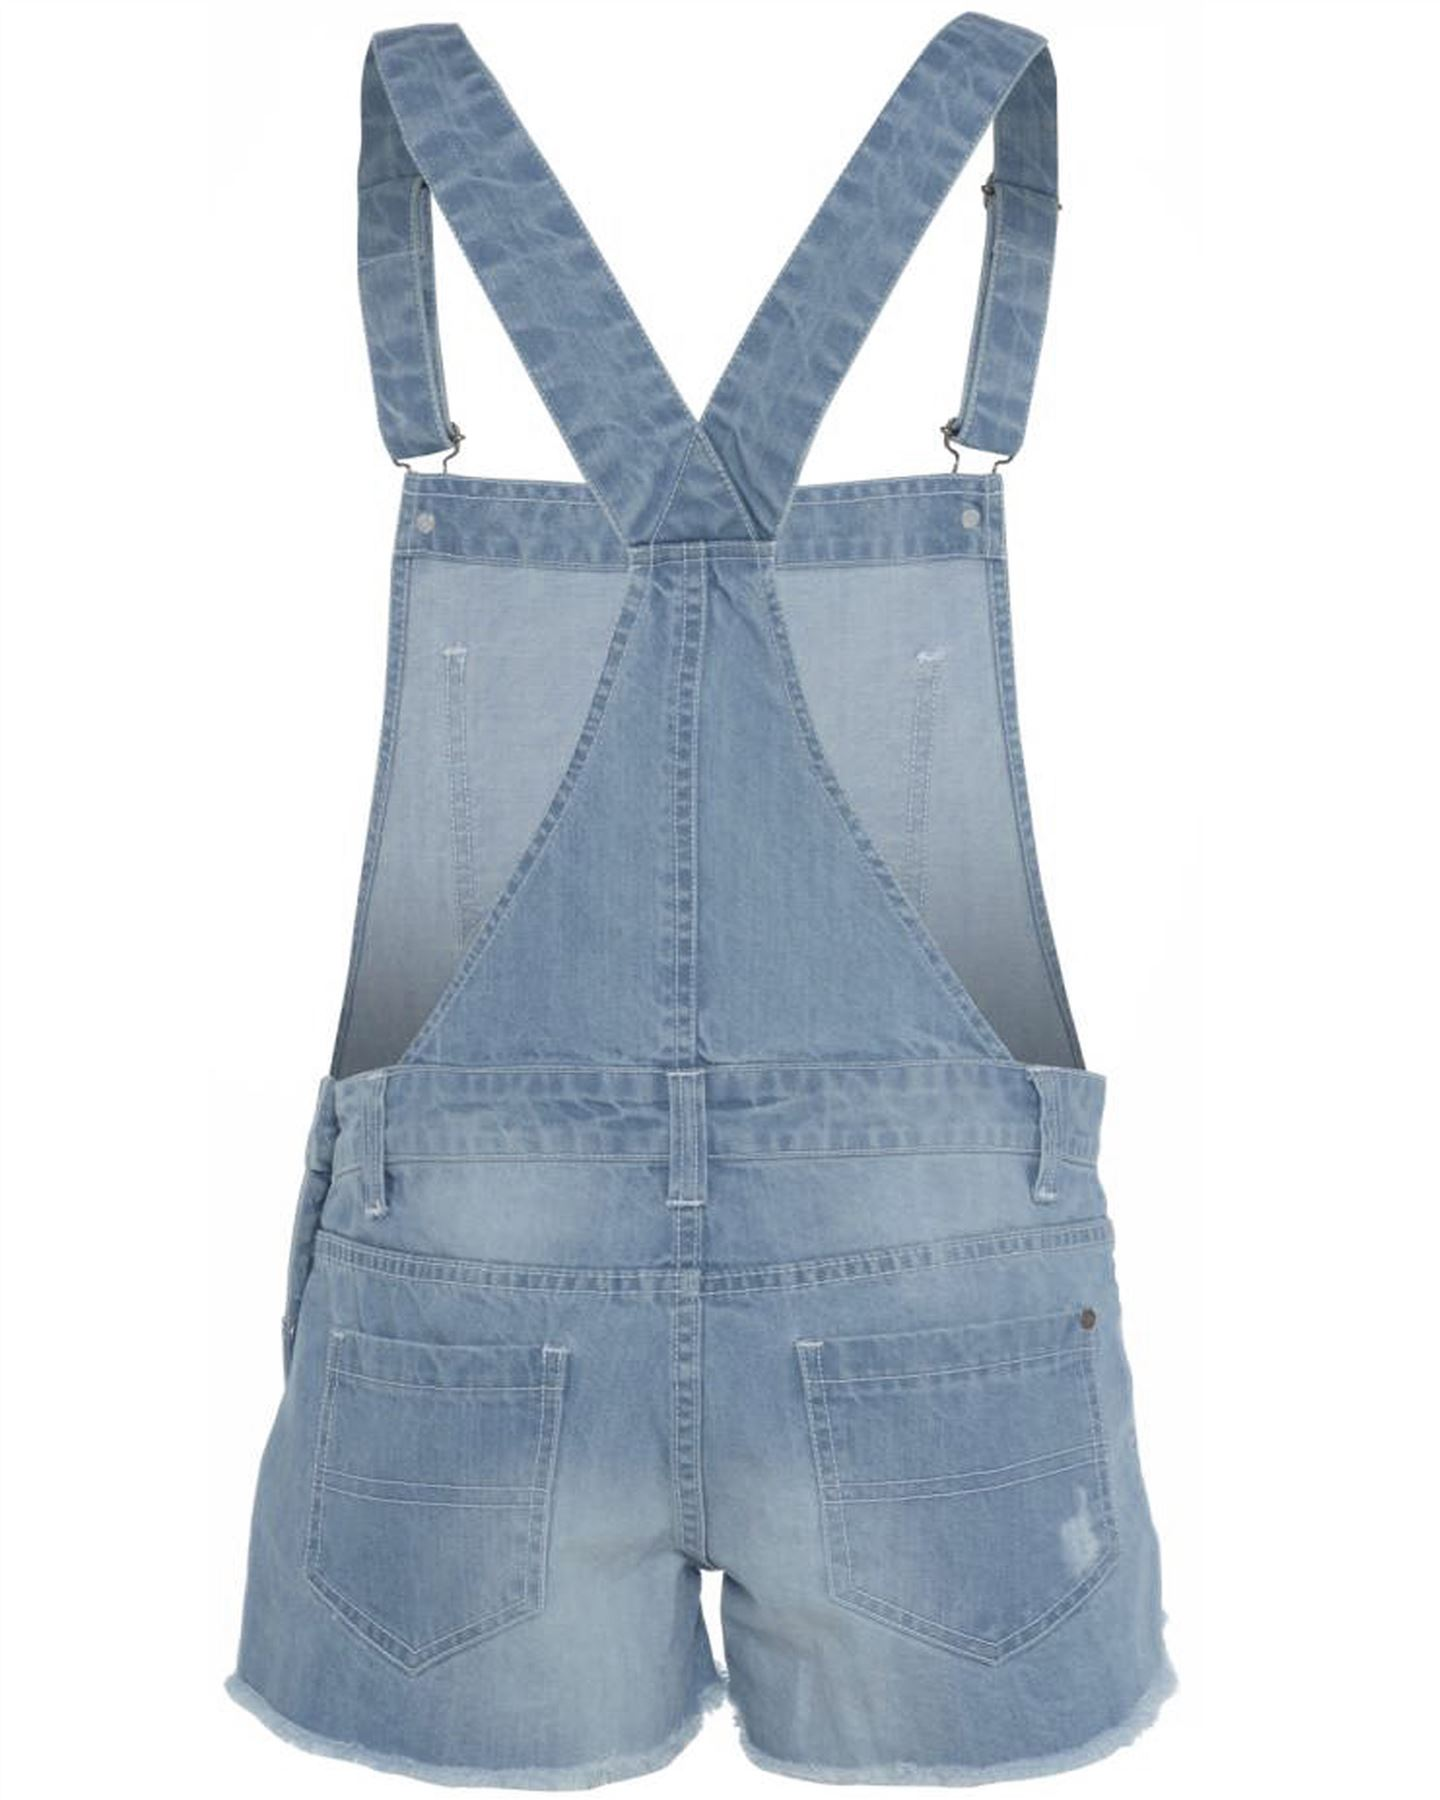 neue damen jeans helle waschung overall latzhose shorts ebay. Black Bedroom Furniture Sets. Home Design Ideas